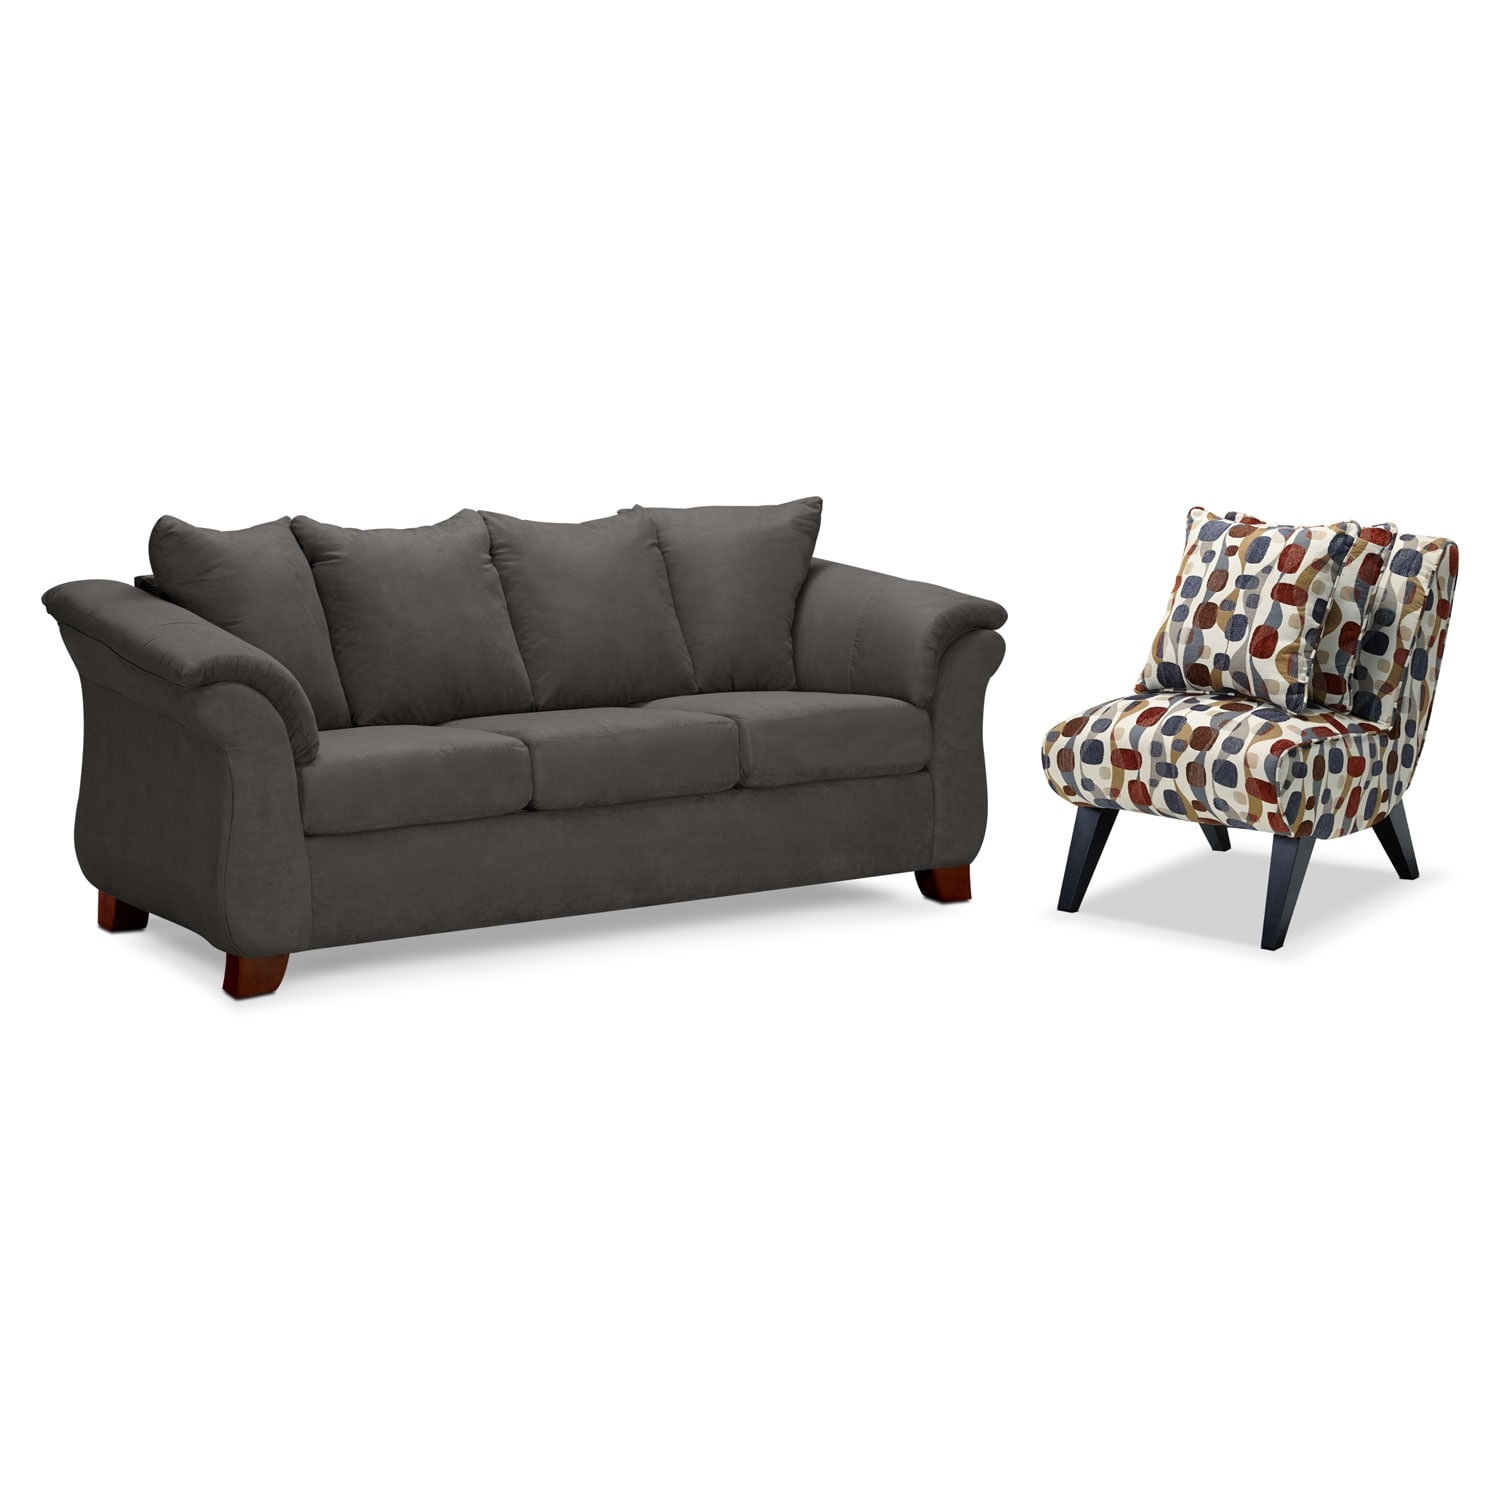 Living Room Furniture - Adrian Graphite 2 Pc. Living Room w/ Accent Chair